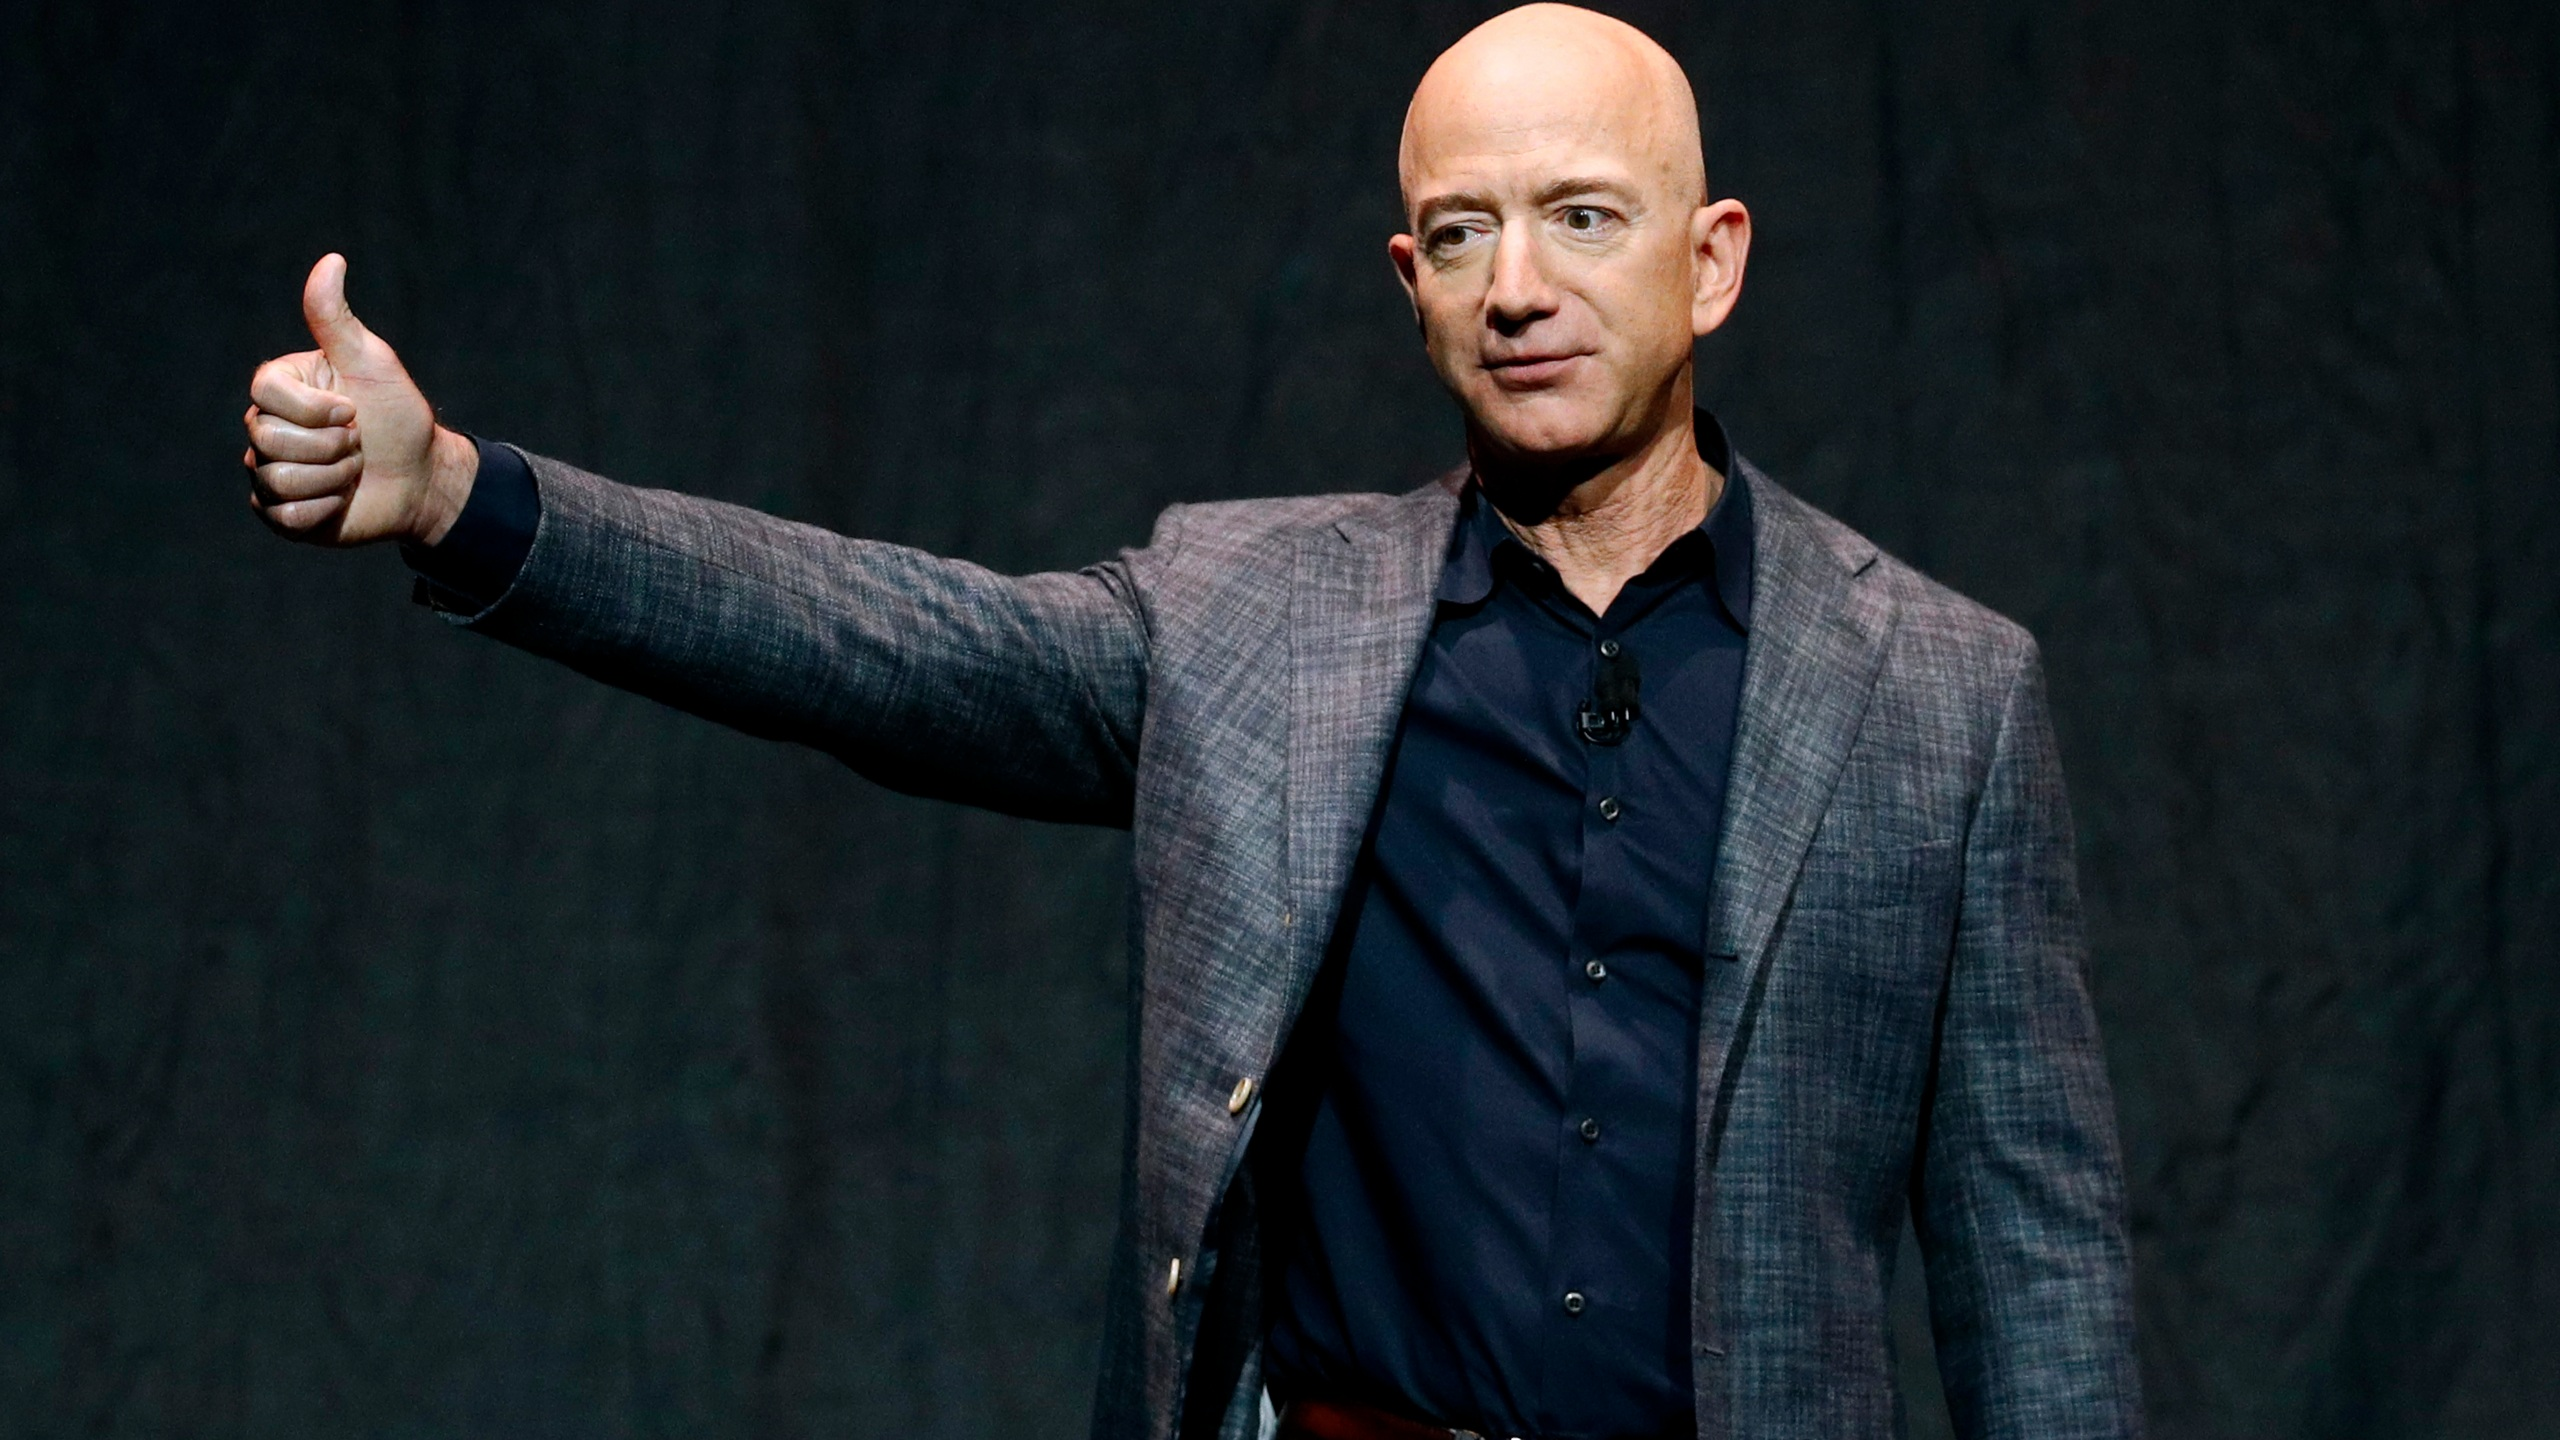 In this Thursday, May 9, 2019, file photo, Jeff Bezos speaks at an event before unveiling Blue Origin's Blue Moon lunar lander, in Washington. On Monday, July 12, 2021, the Federal Aviation Administration approved Blue Origin's attempt to launch people into space. (AP Photo/Patrick Semansky, File)